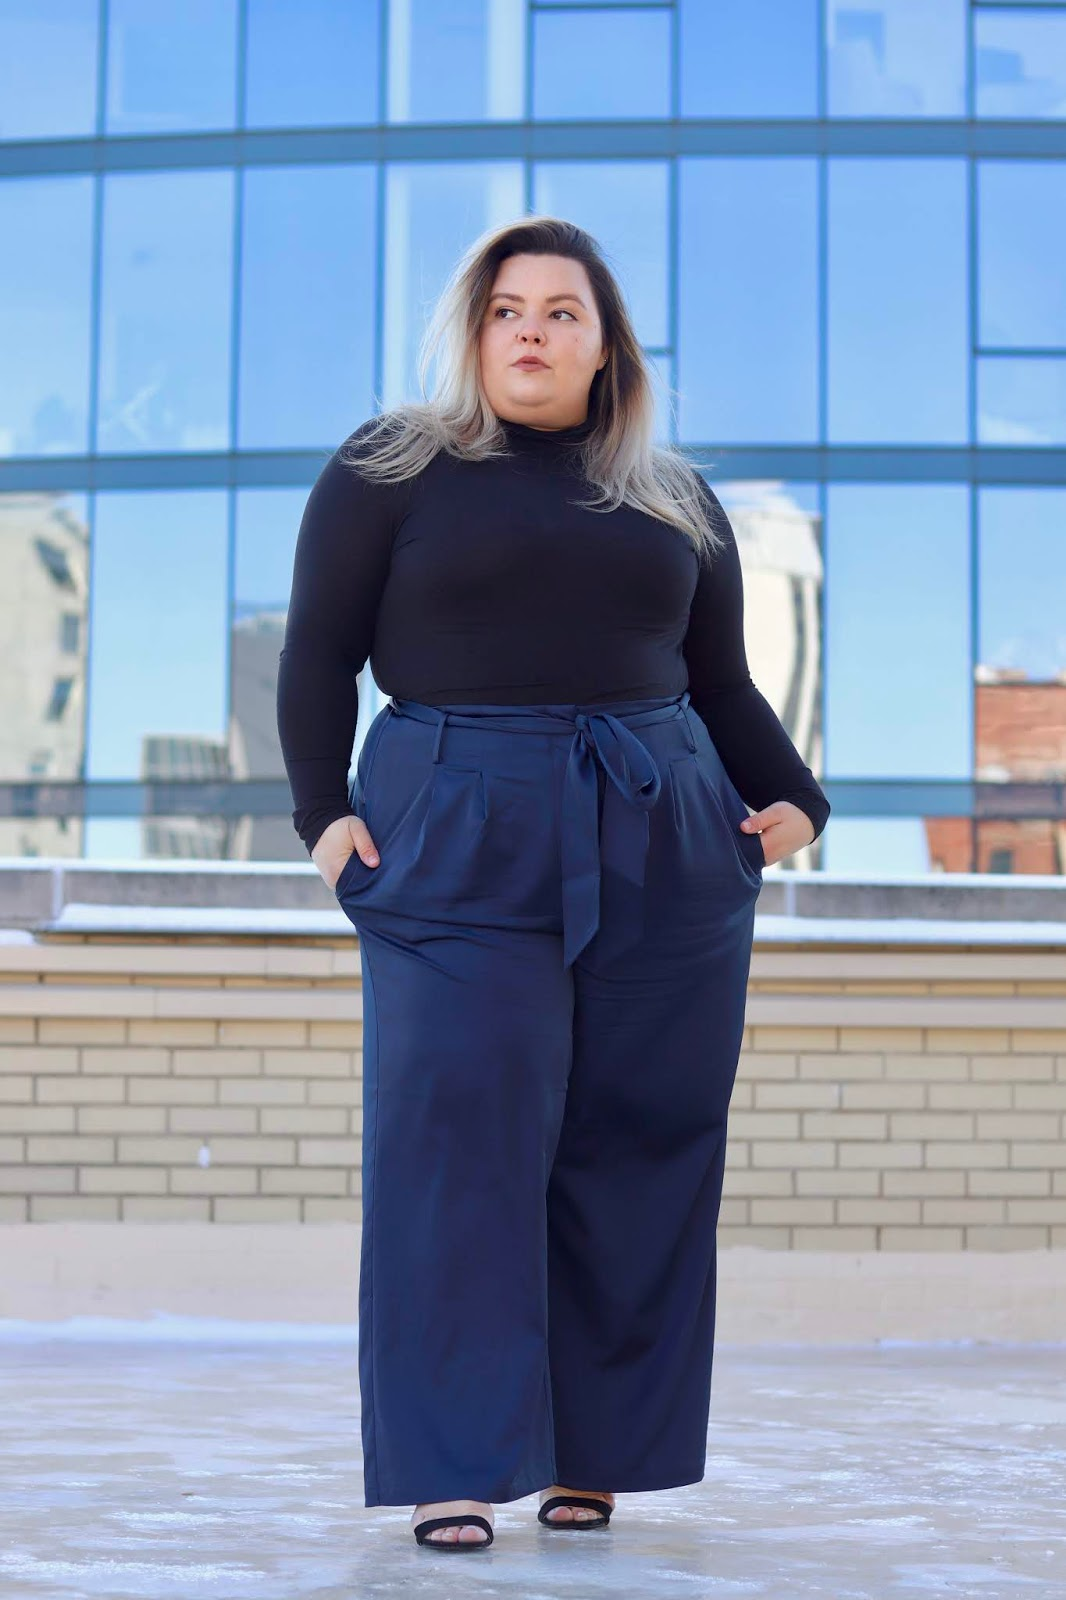 12 petite plus size clothing brands to shop-from petite plus size jeans to petite plus size dresses